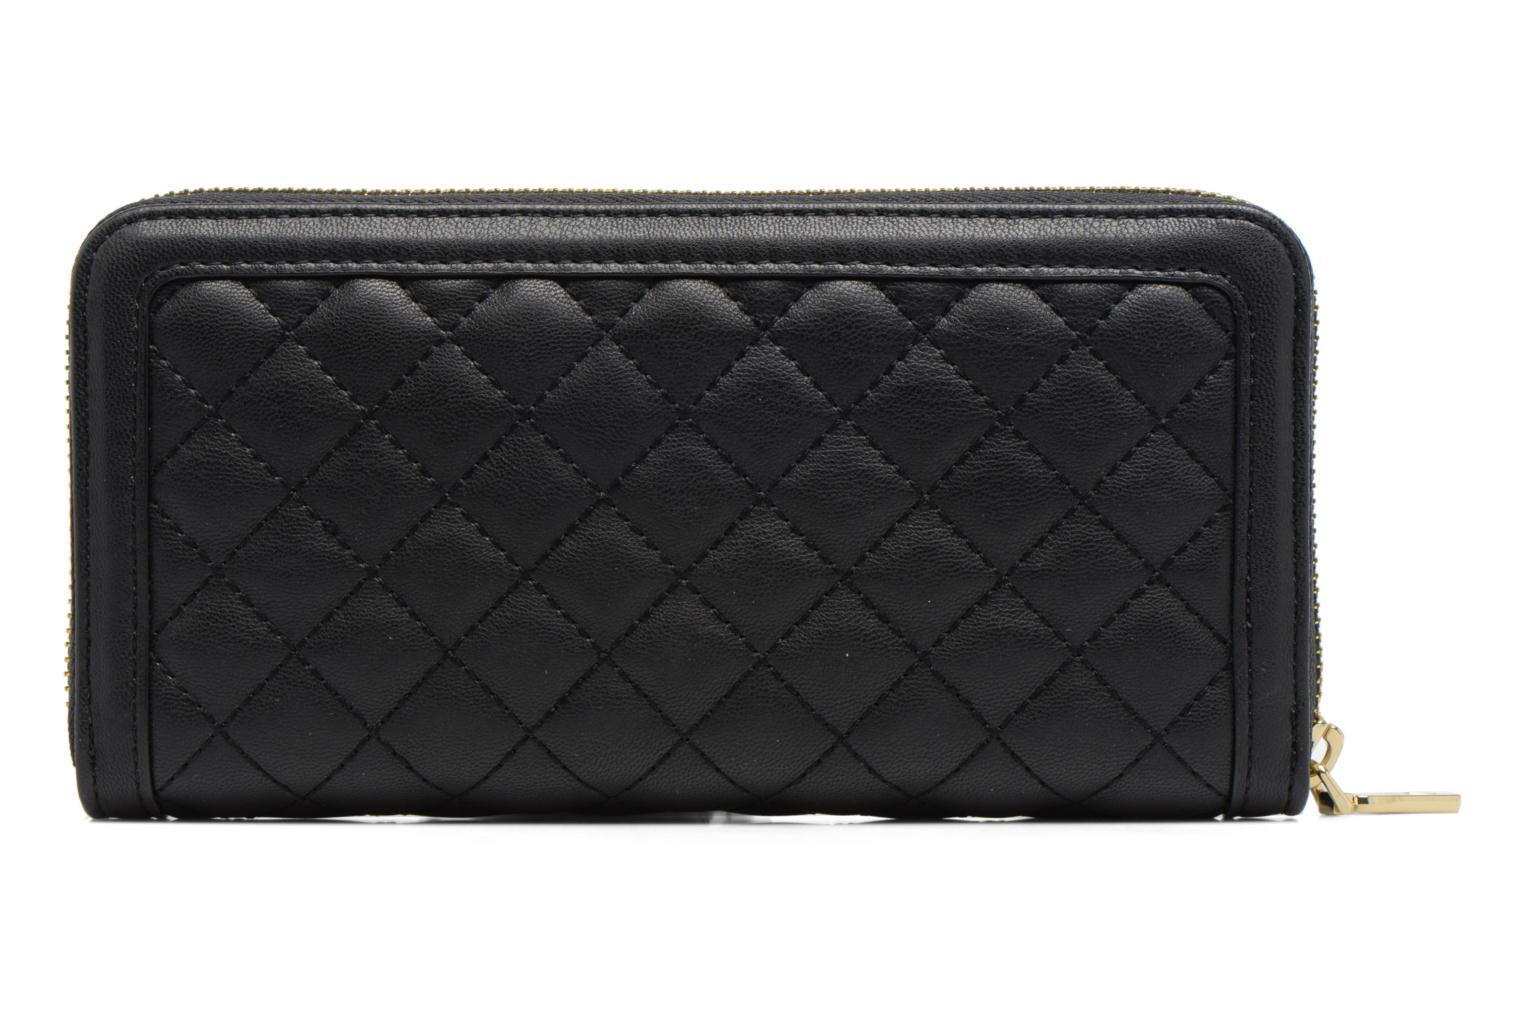 Petite Maroquinerie Love Moschino Portefeuille L Zip Around Quilted Noir vue face